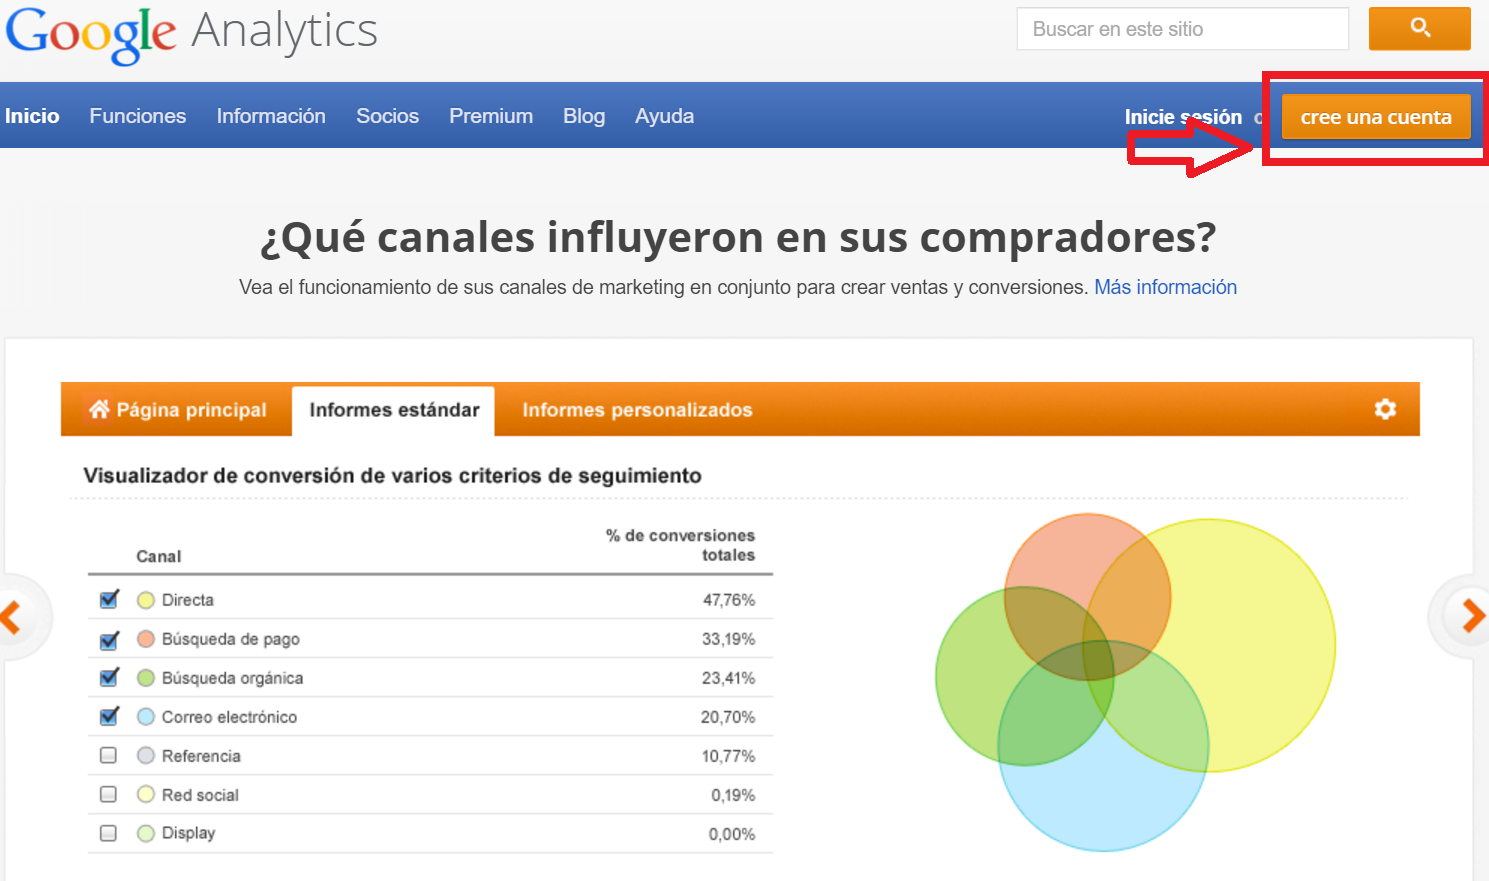 Google Analytics como se crea